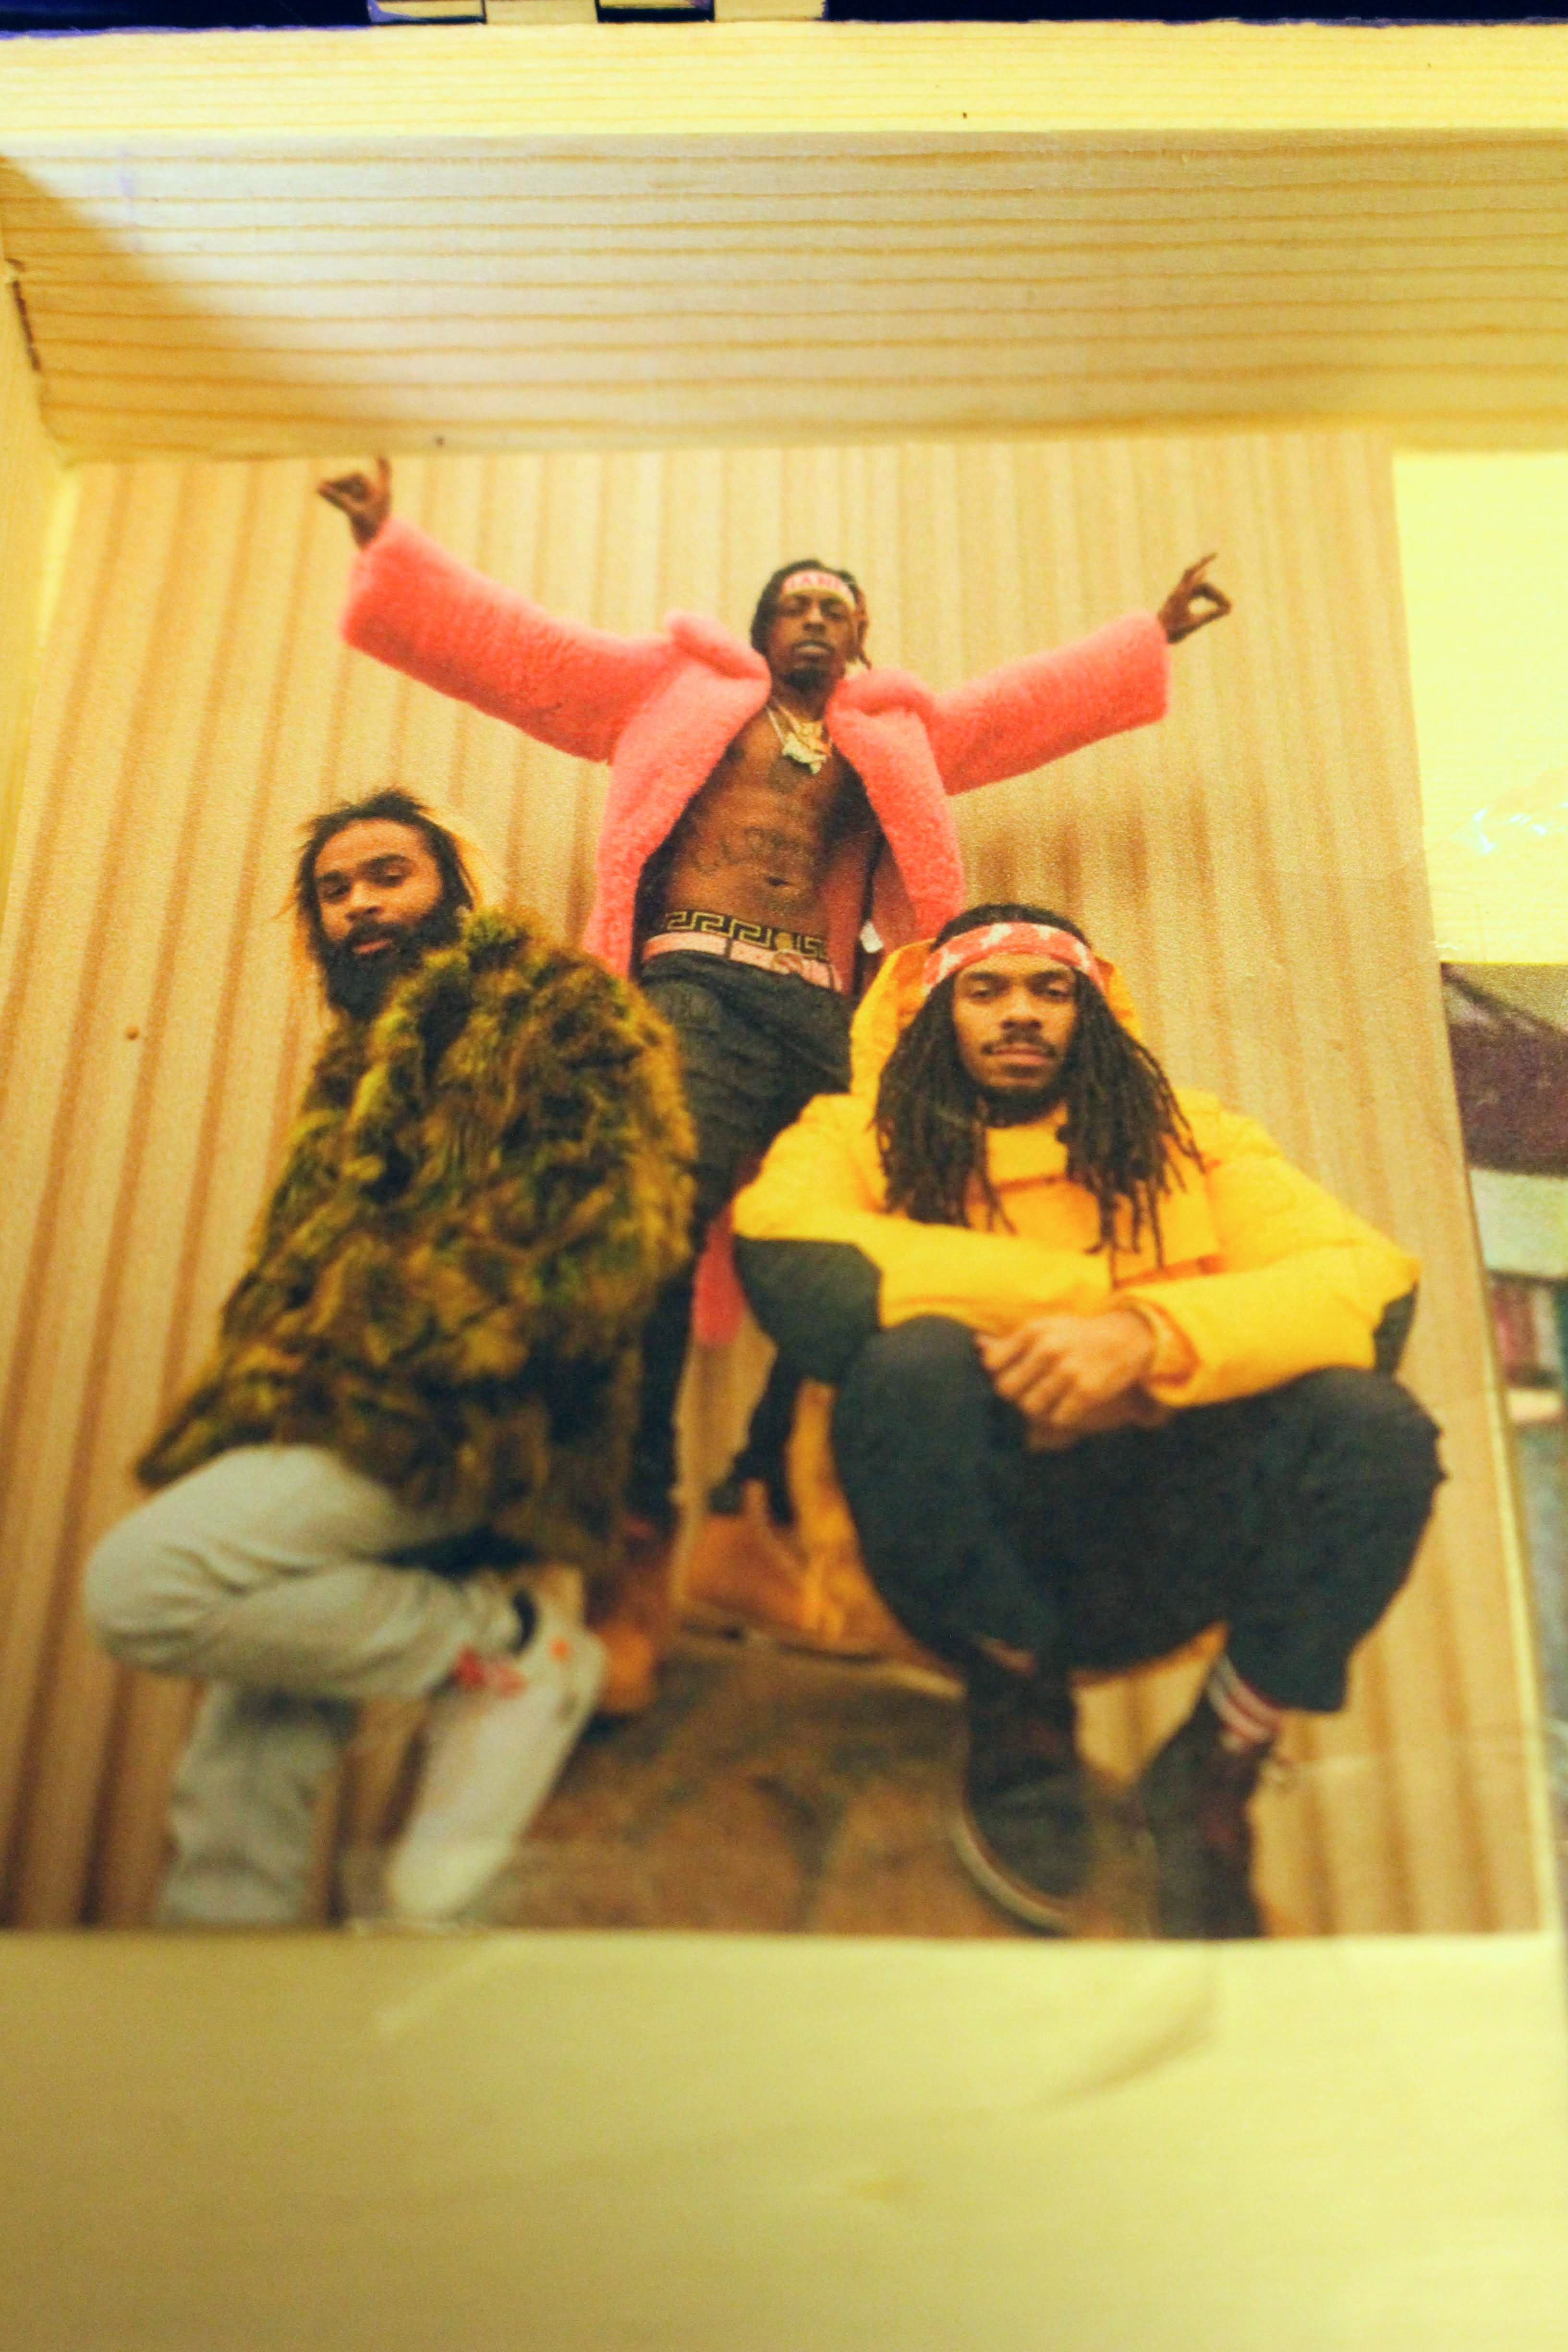 This image is of Flatbush Zombies, my favorite rap group. I included them in my teaching module and in the kit to show how other cultures, aside from Black-American culture can influence rap music. Particularly Caribbean culture where both the founders of hip hop and the Flatbush Zombies derive from